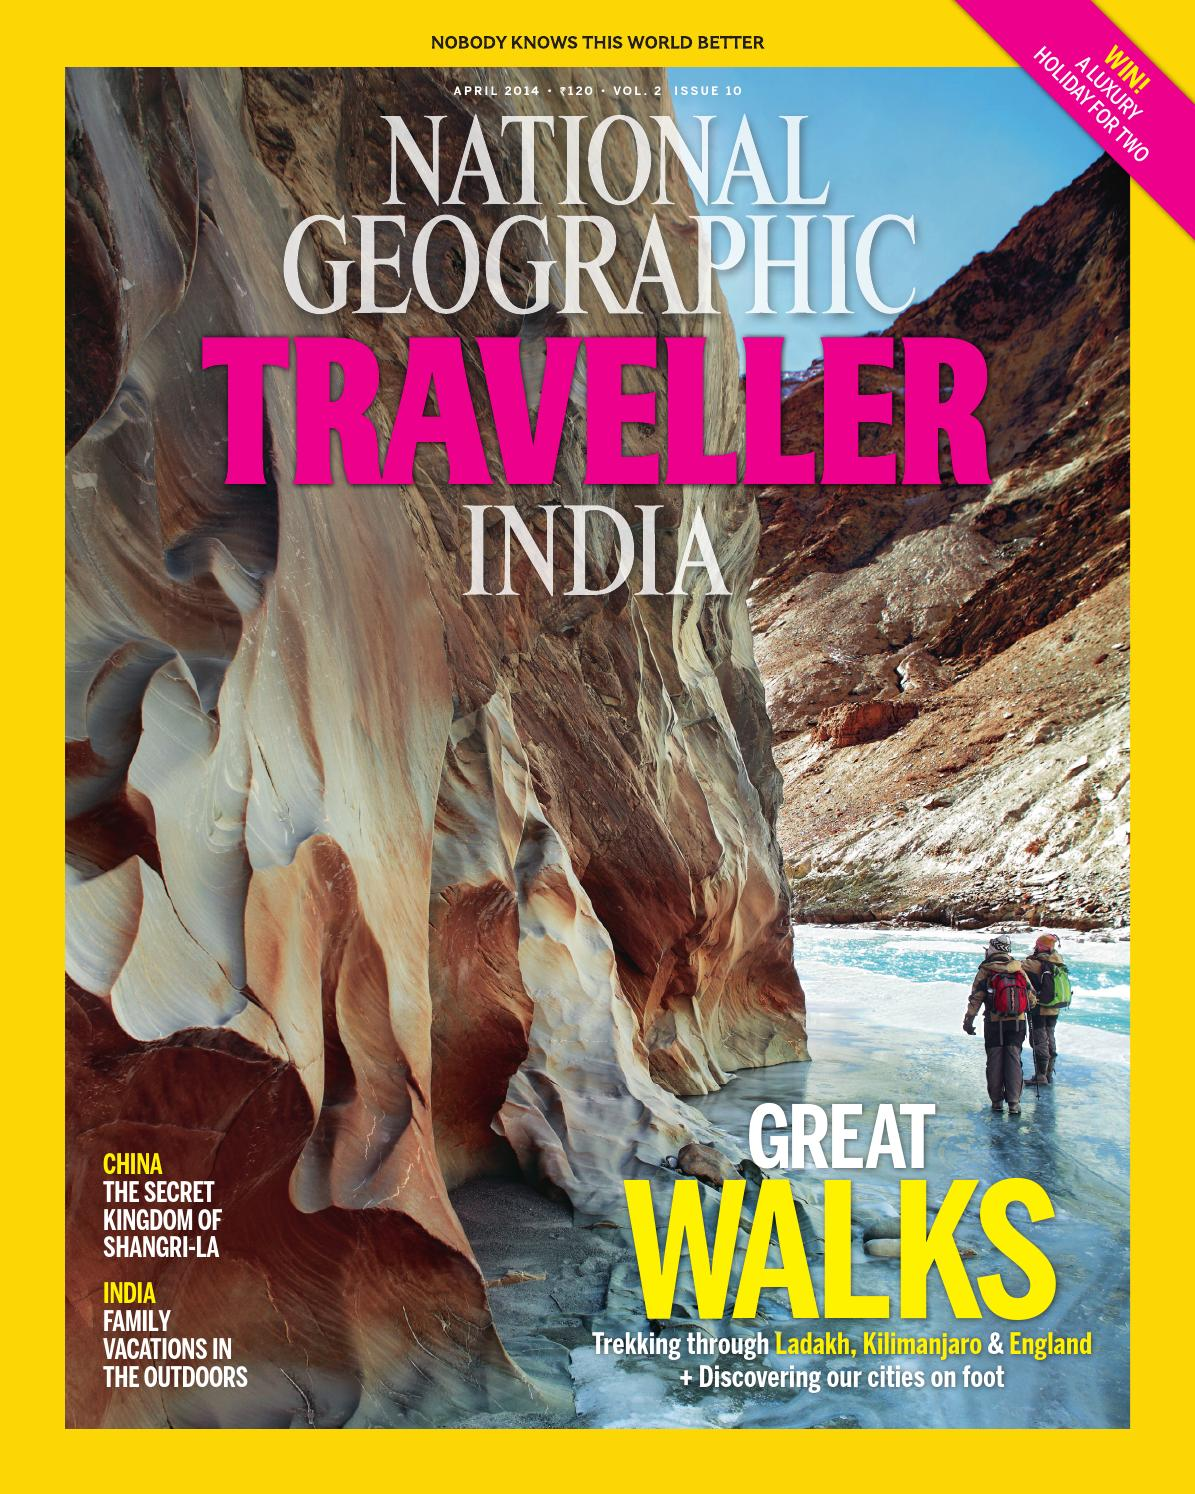 Secret Comfort Kopfkissen Test Ngti April 2014 Web Preview By National Geographic Traveller India